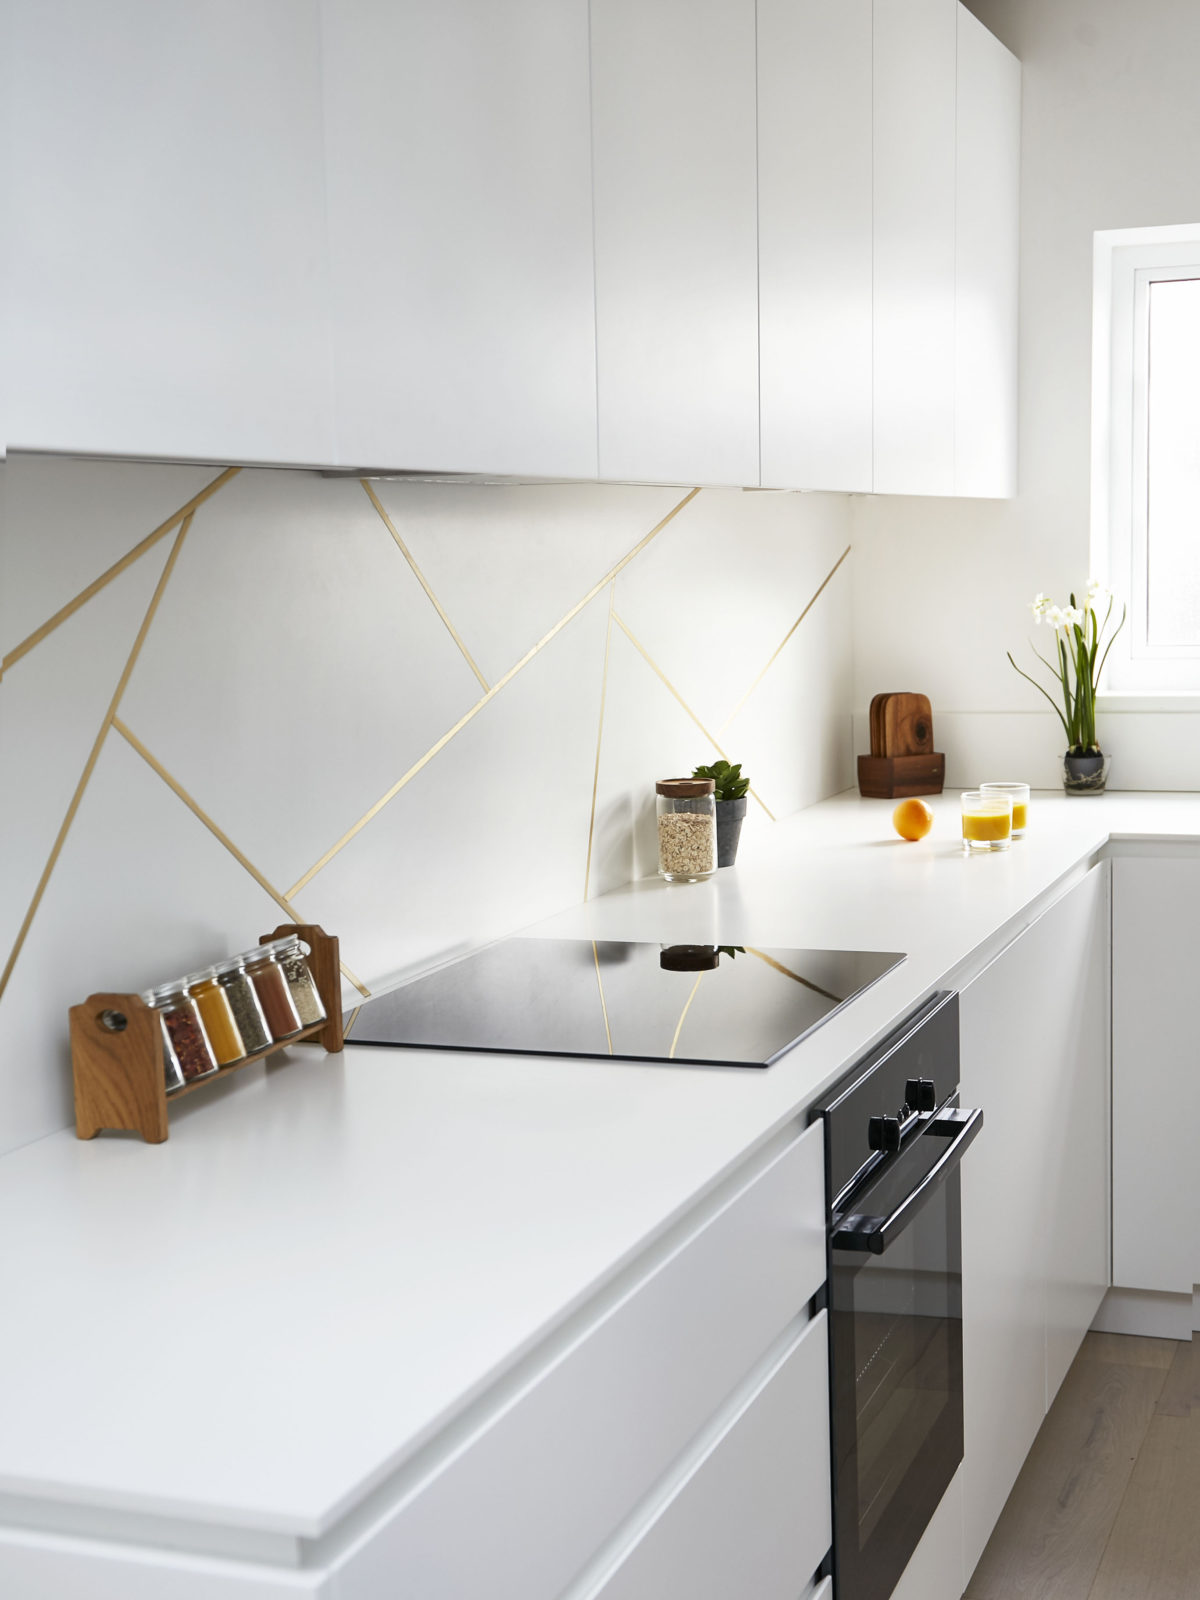 White lacquered handless kitchen with white Corian worktop and satin brass inlay splashback design